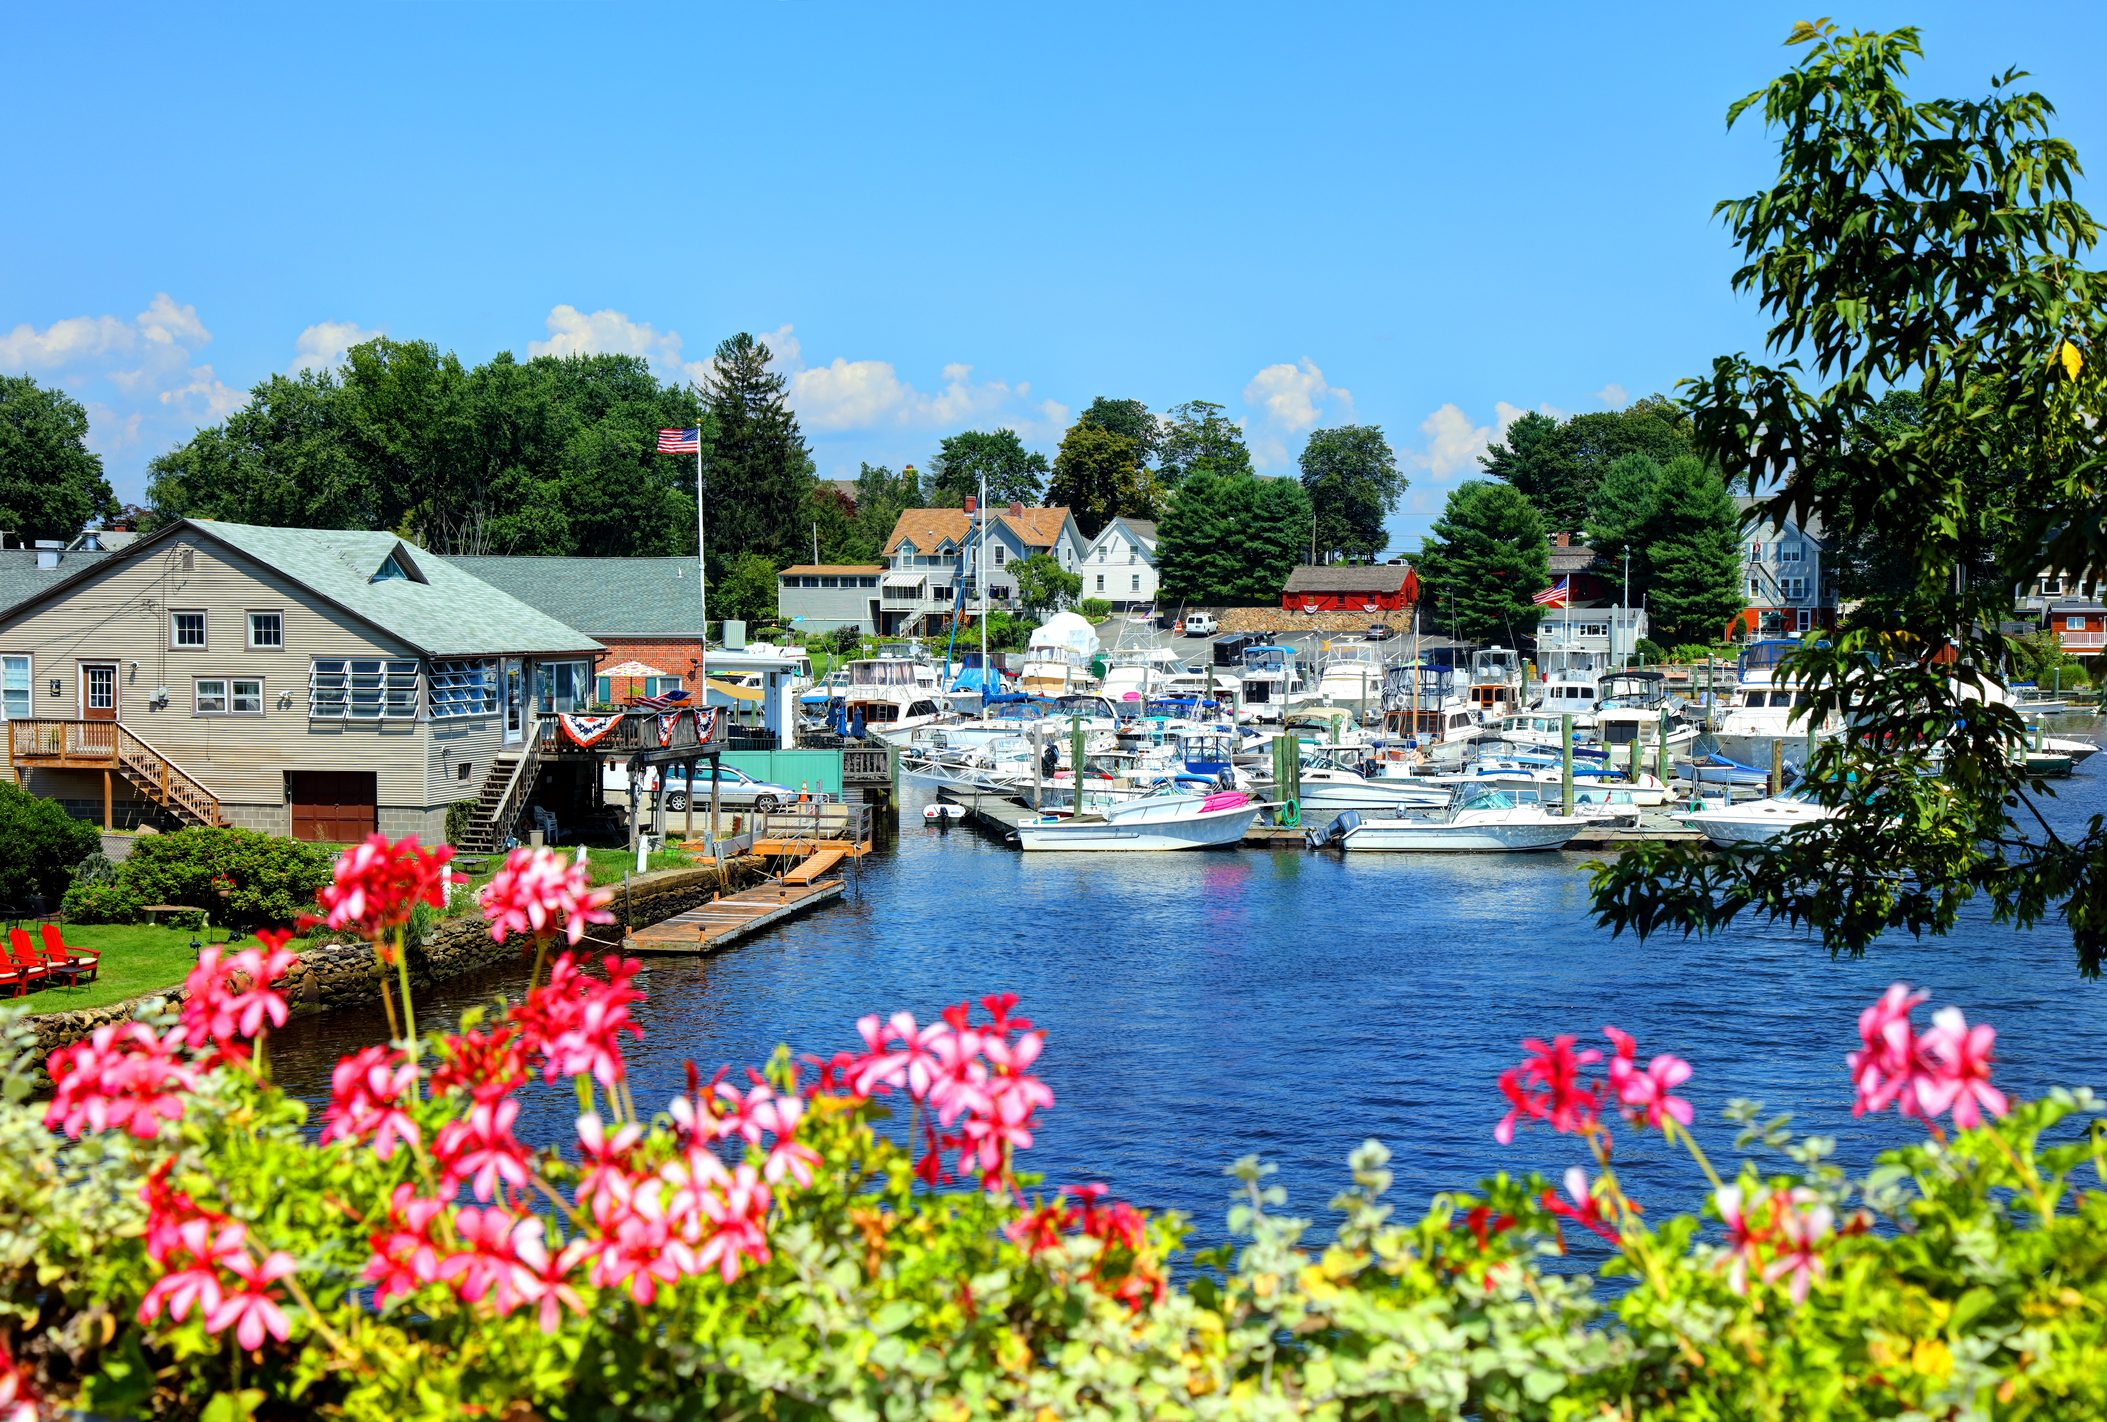 Pawtuxet Village in the cities of Warwick and Cranston